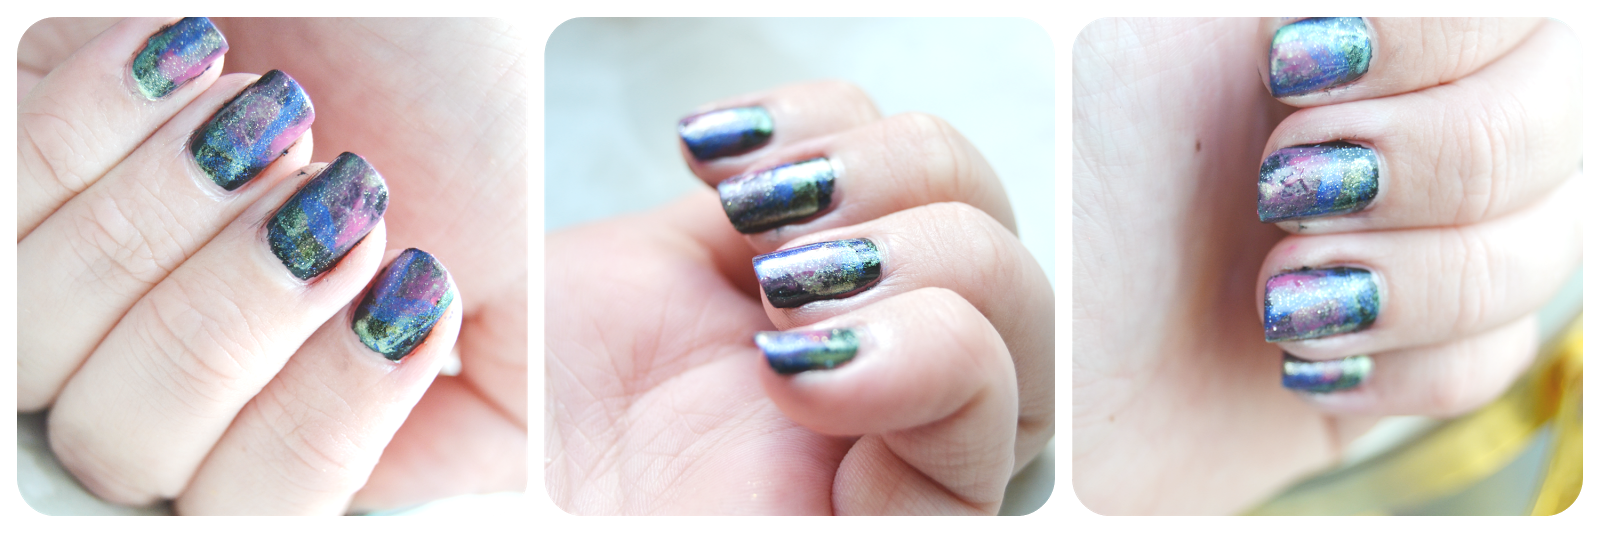 Nagellack Tutorial Galaxy Nails Nägel OPI Essie P2 Anny Sally Hansen